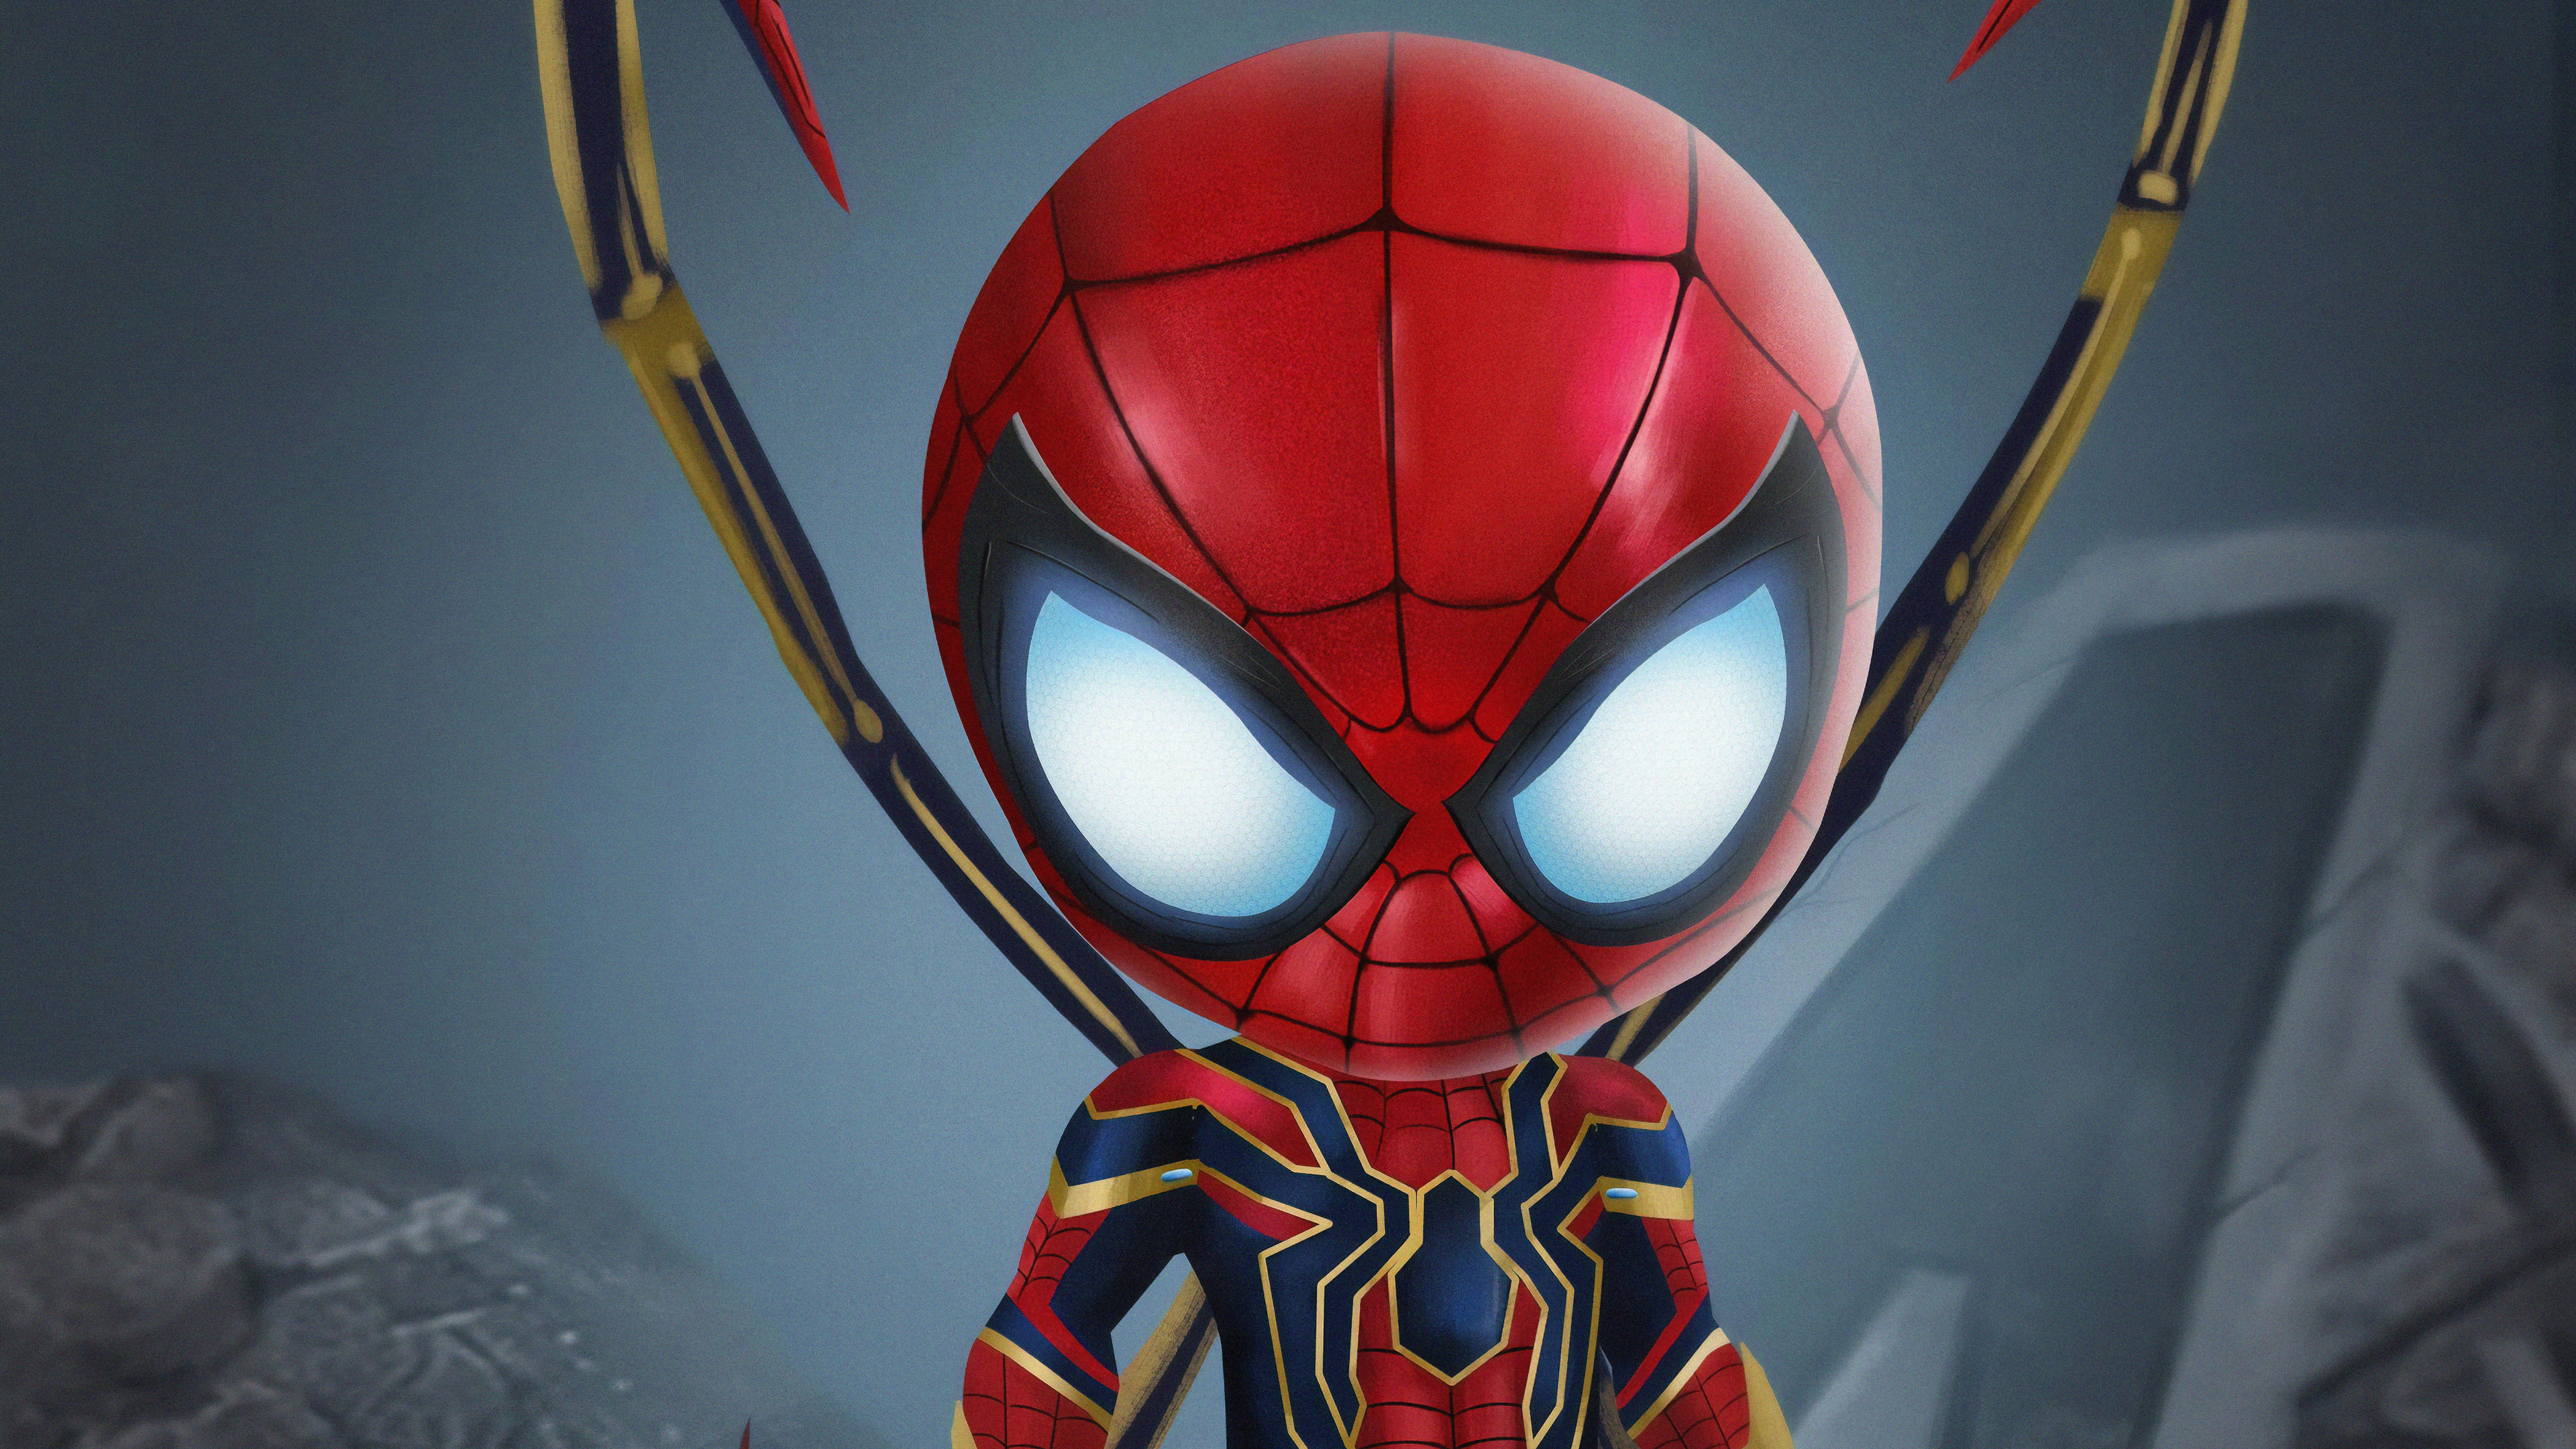 Chibi Iron Spiderman superheroes wallpapers, spiderman ...